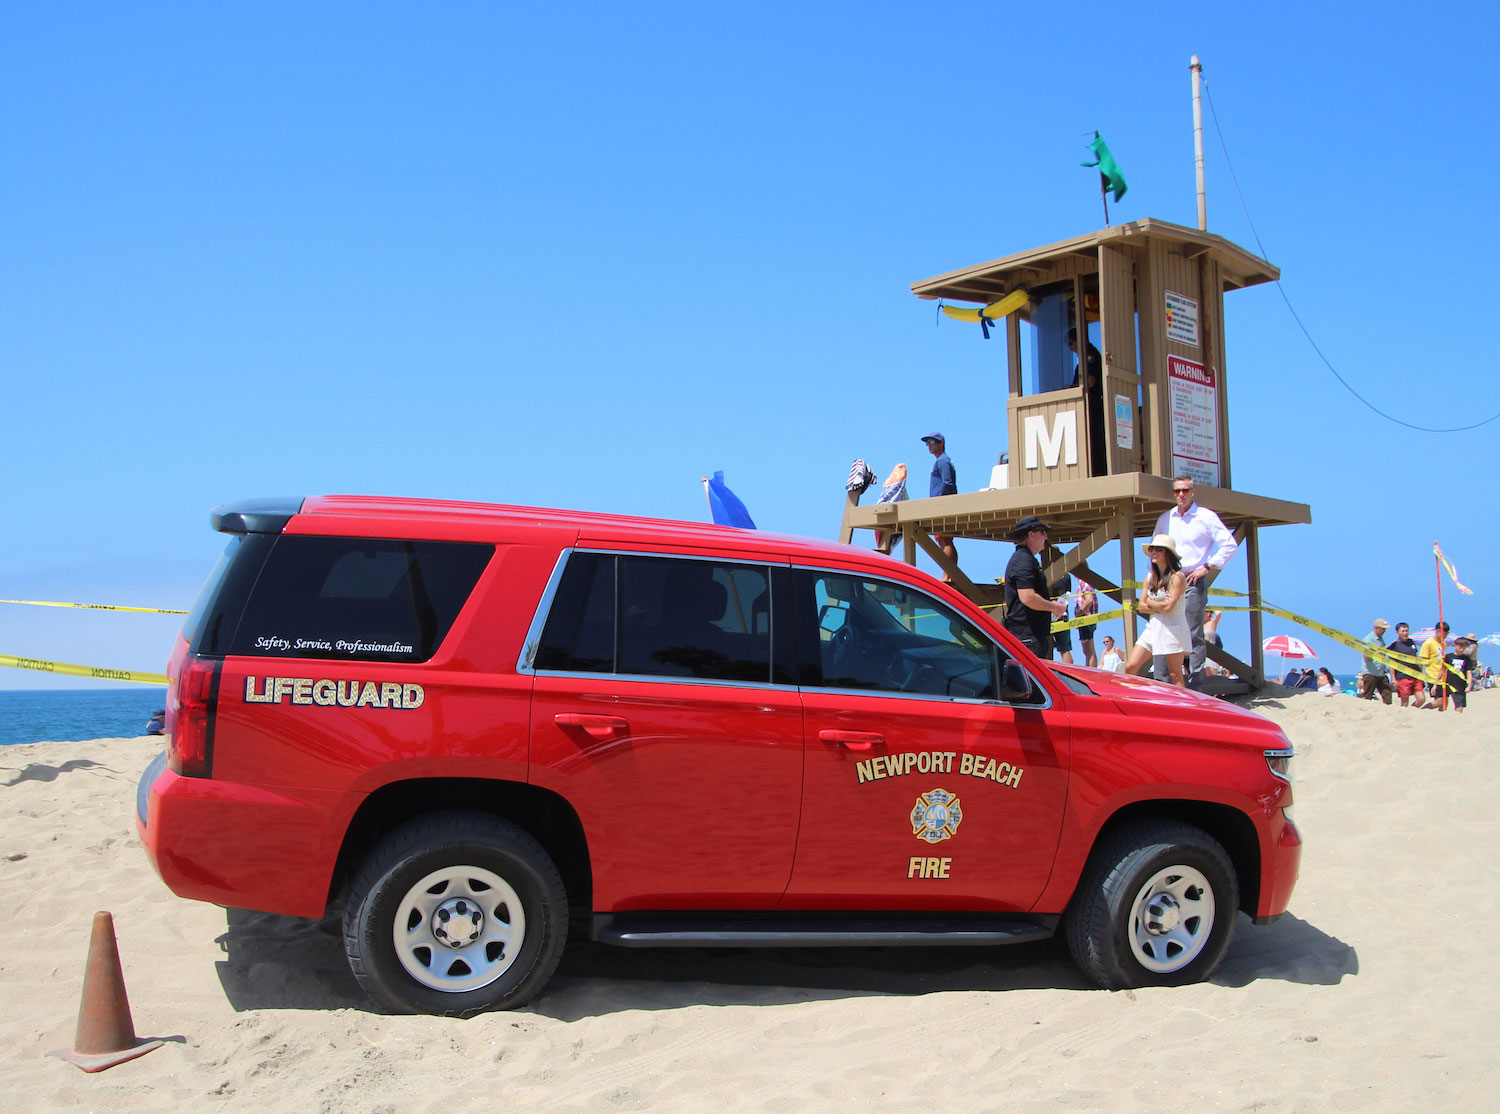 Lifeguards on the waterfront Lifeguard truck